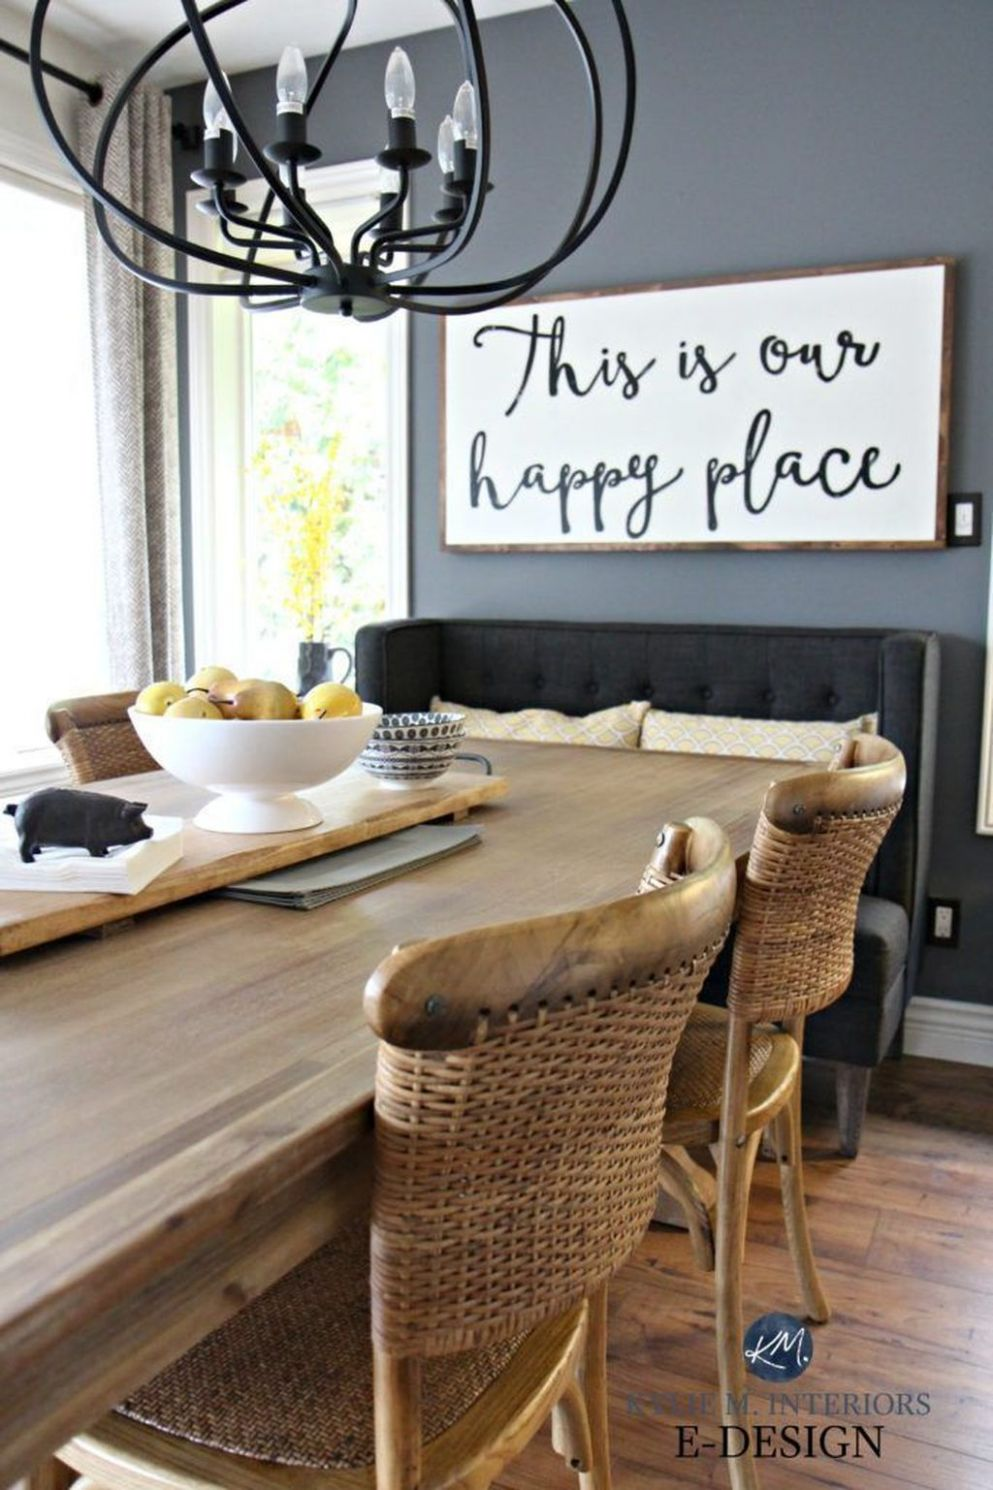 12 Nice Dining Room Wall Decor Ideas - BELIHOUSE - wall decor ideas for dining room